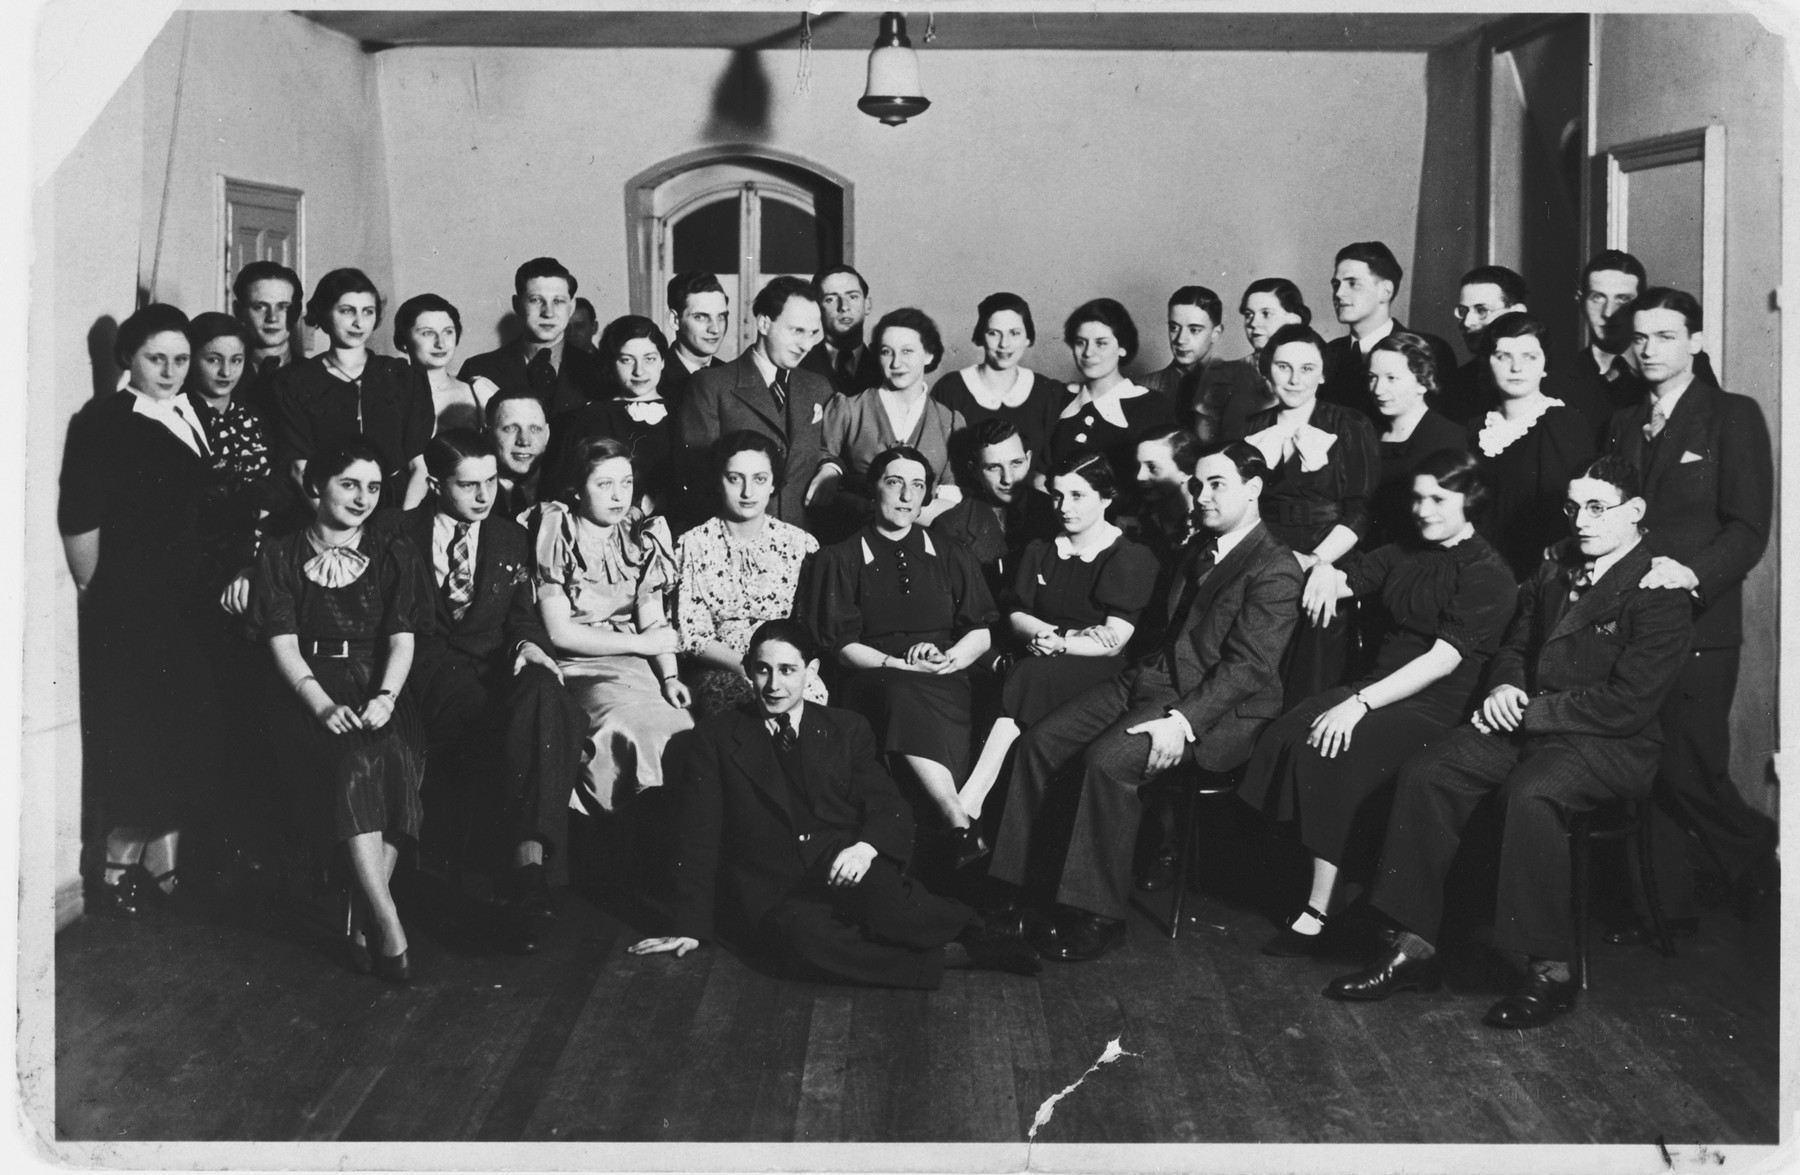 Group portrait of a Jewish high school student dance class in Frankfurt am Main.